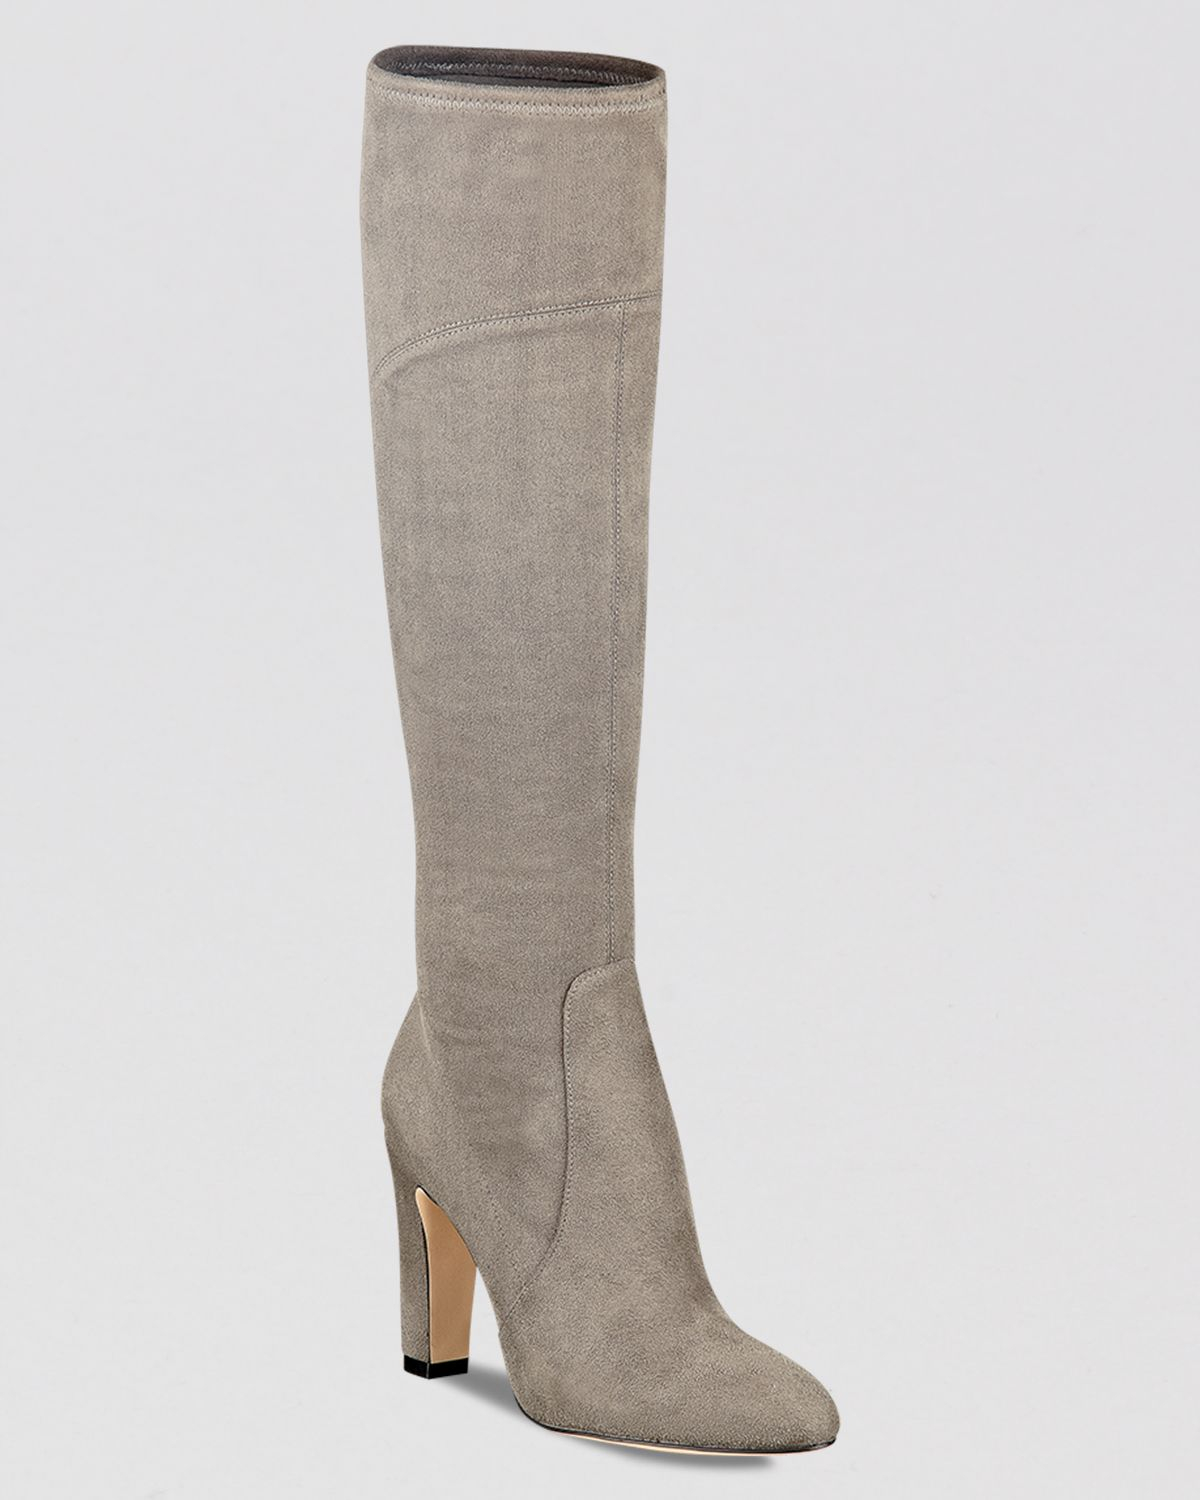 ivanka dress boots sennet high heel in gray